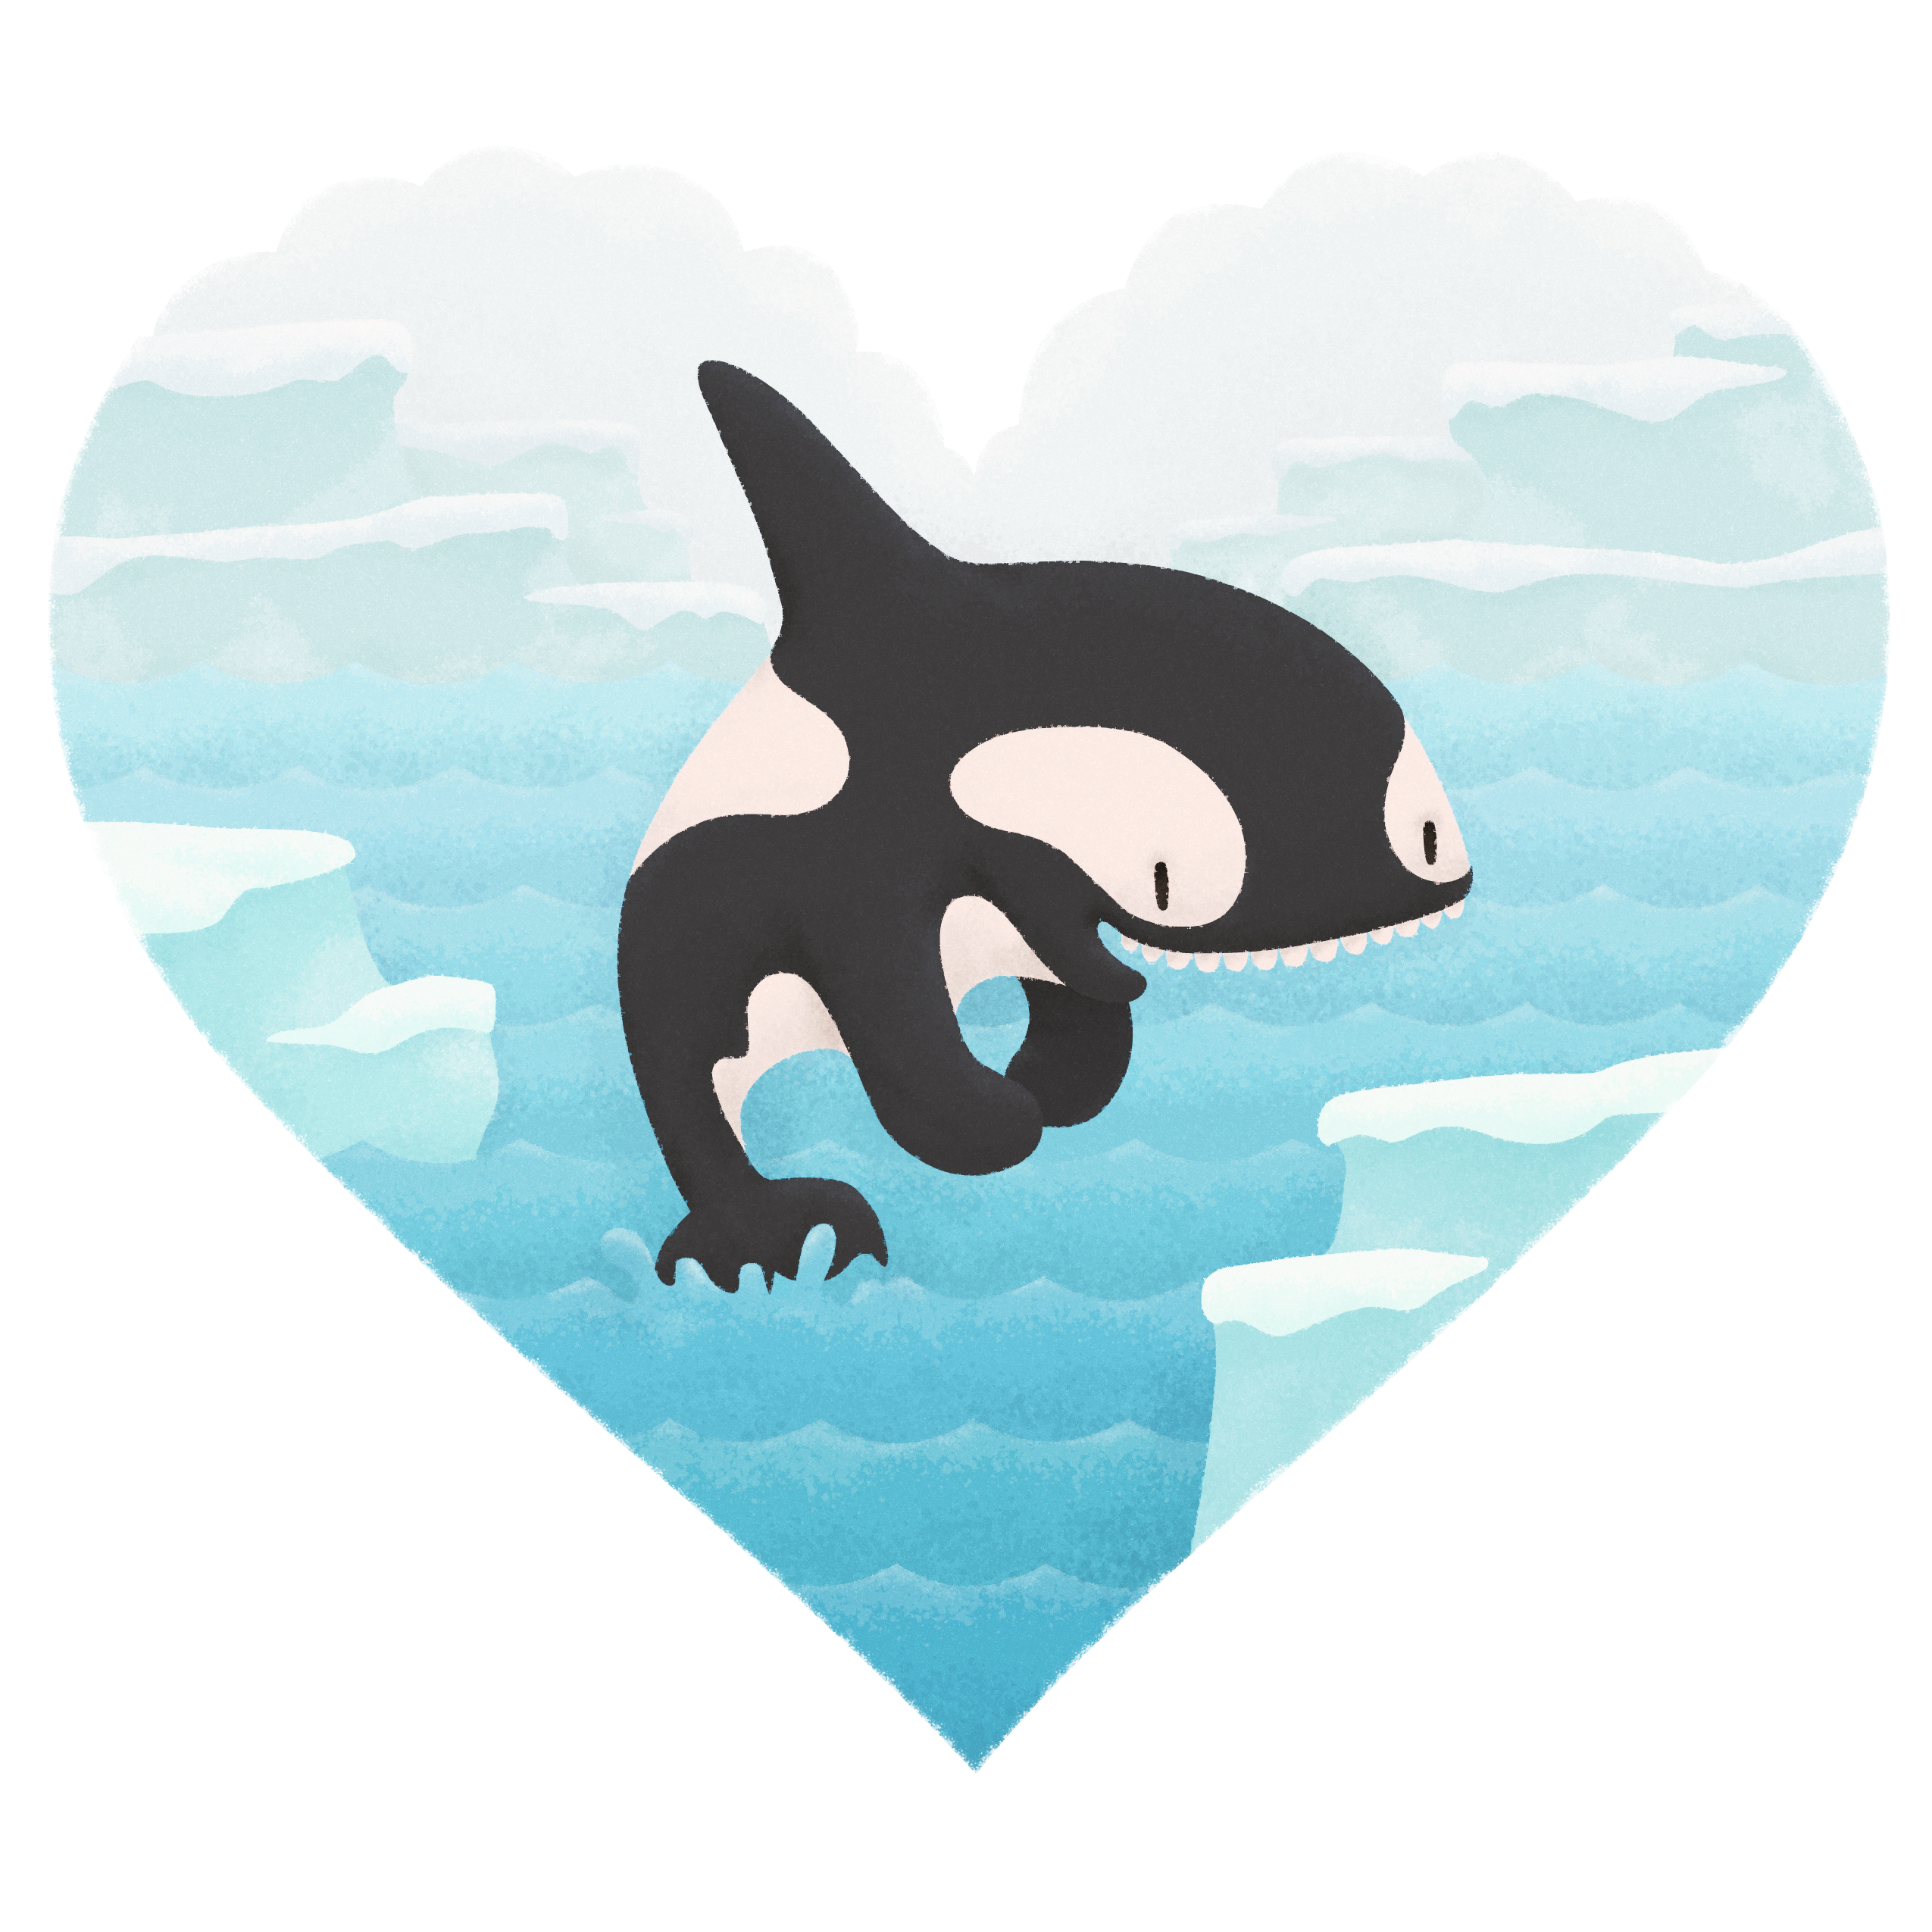 orca_illustration